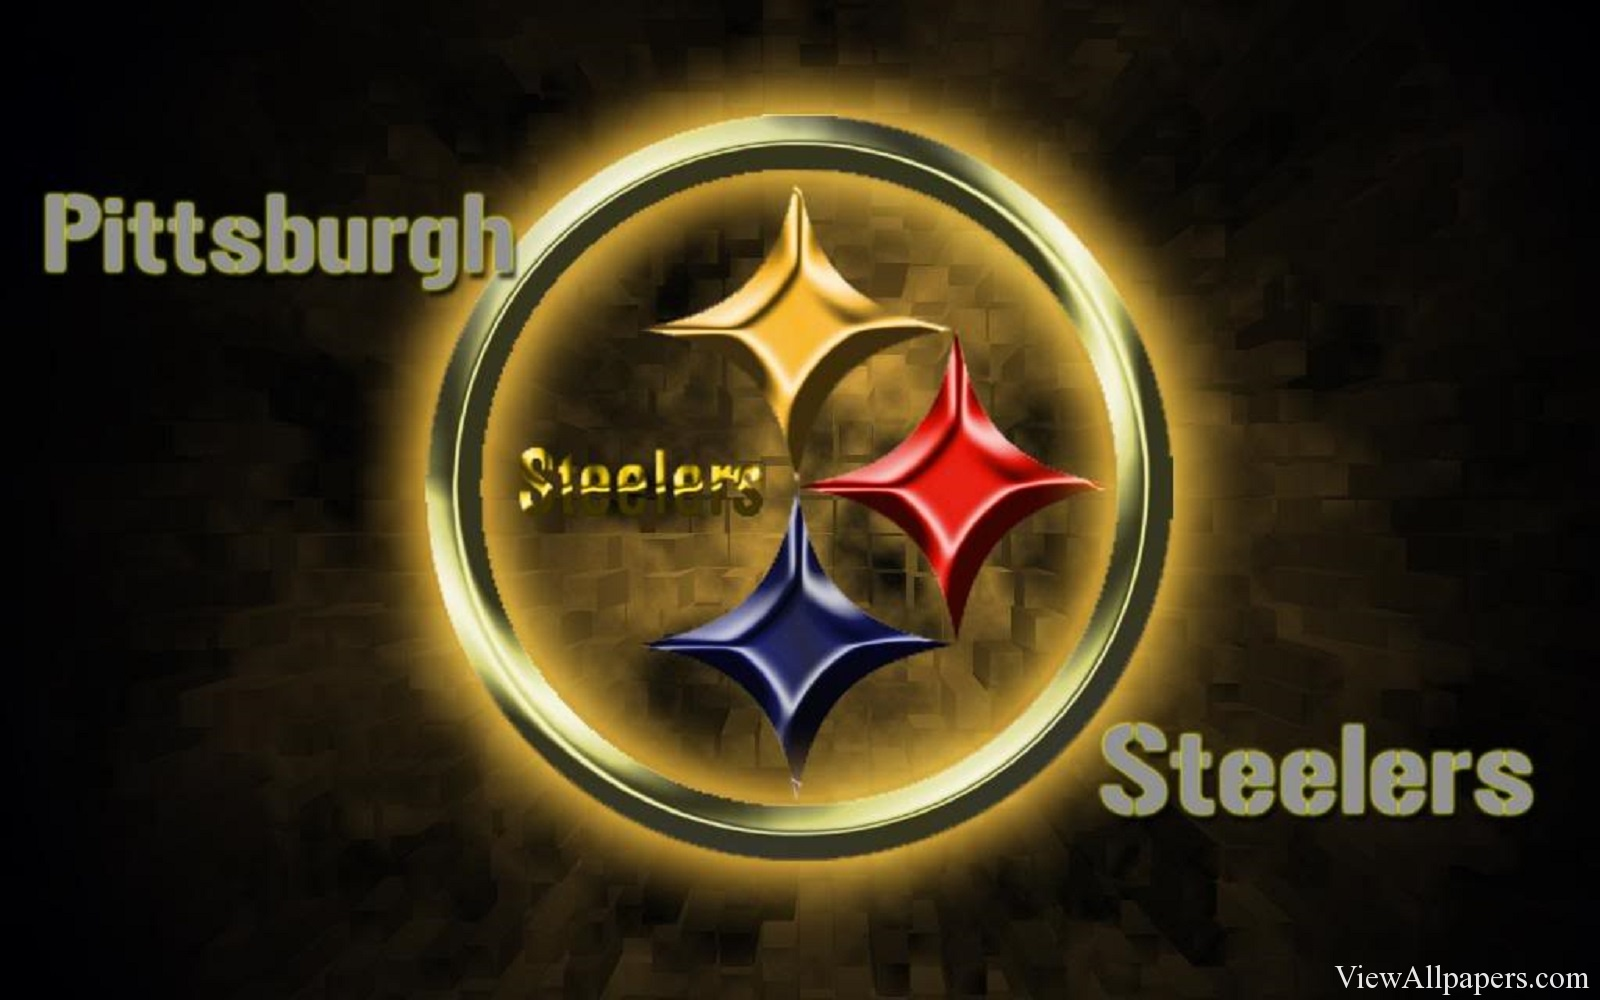 Pittsburgh Steelers Logo HD Resolution Wallpaper download 1600x1000